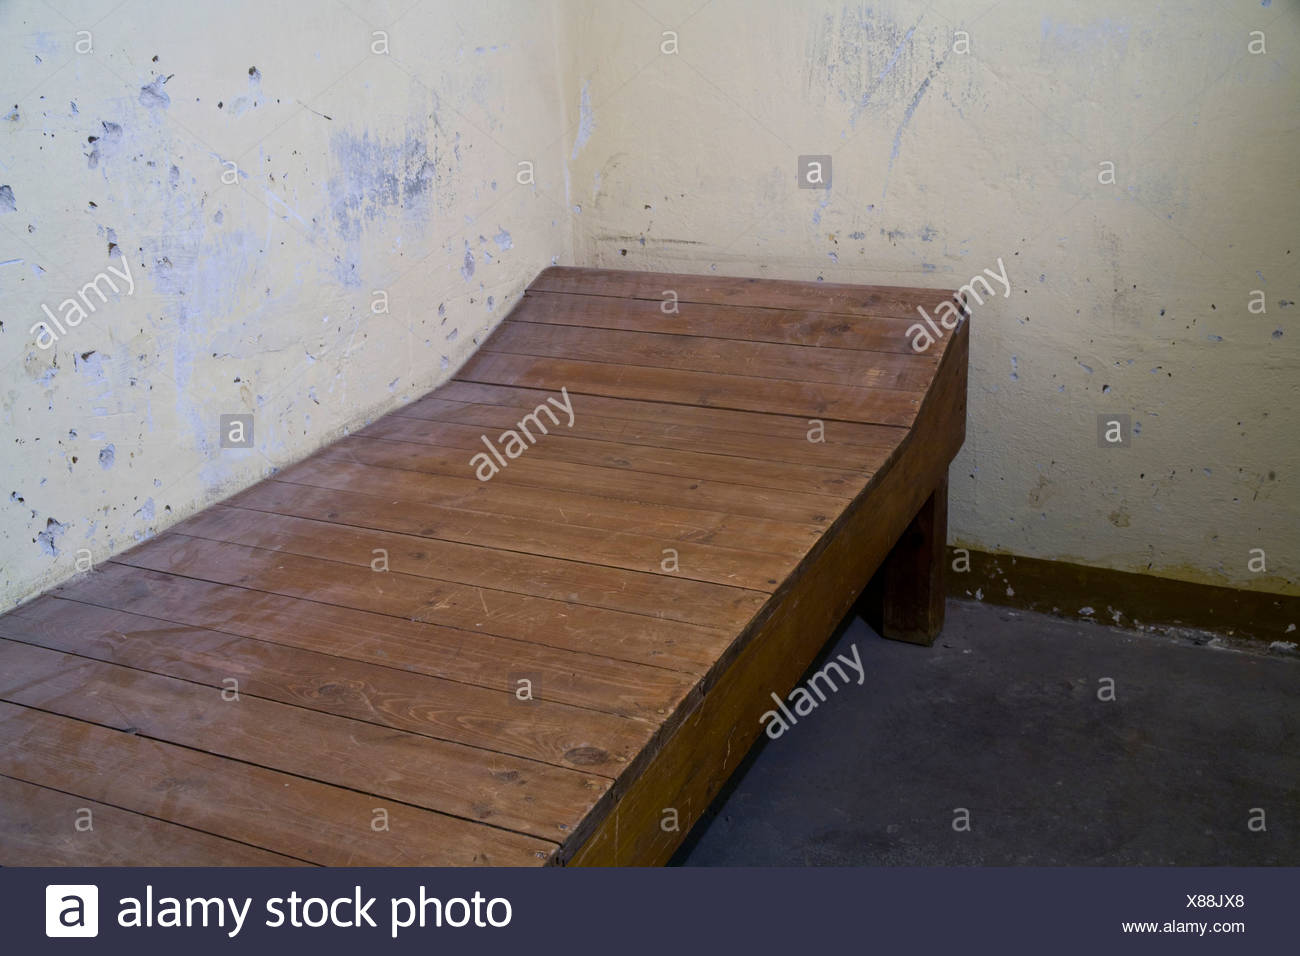 Cot in a windowless cell for solitary confinement, Berlin-Hohenschoenhausen memorial, former prison of the GDR's secret service - Stock Image